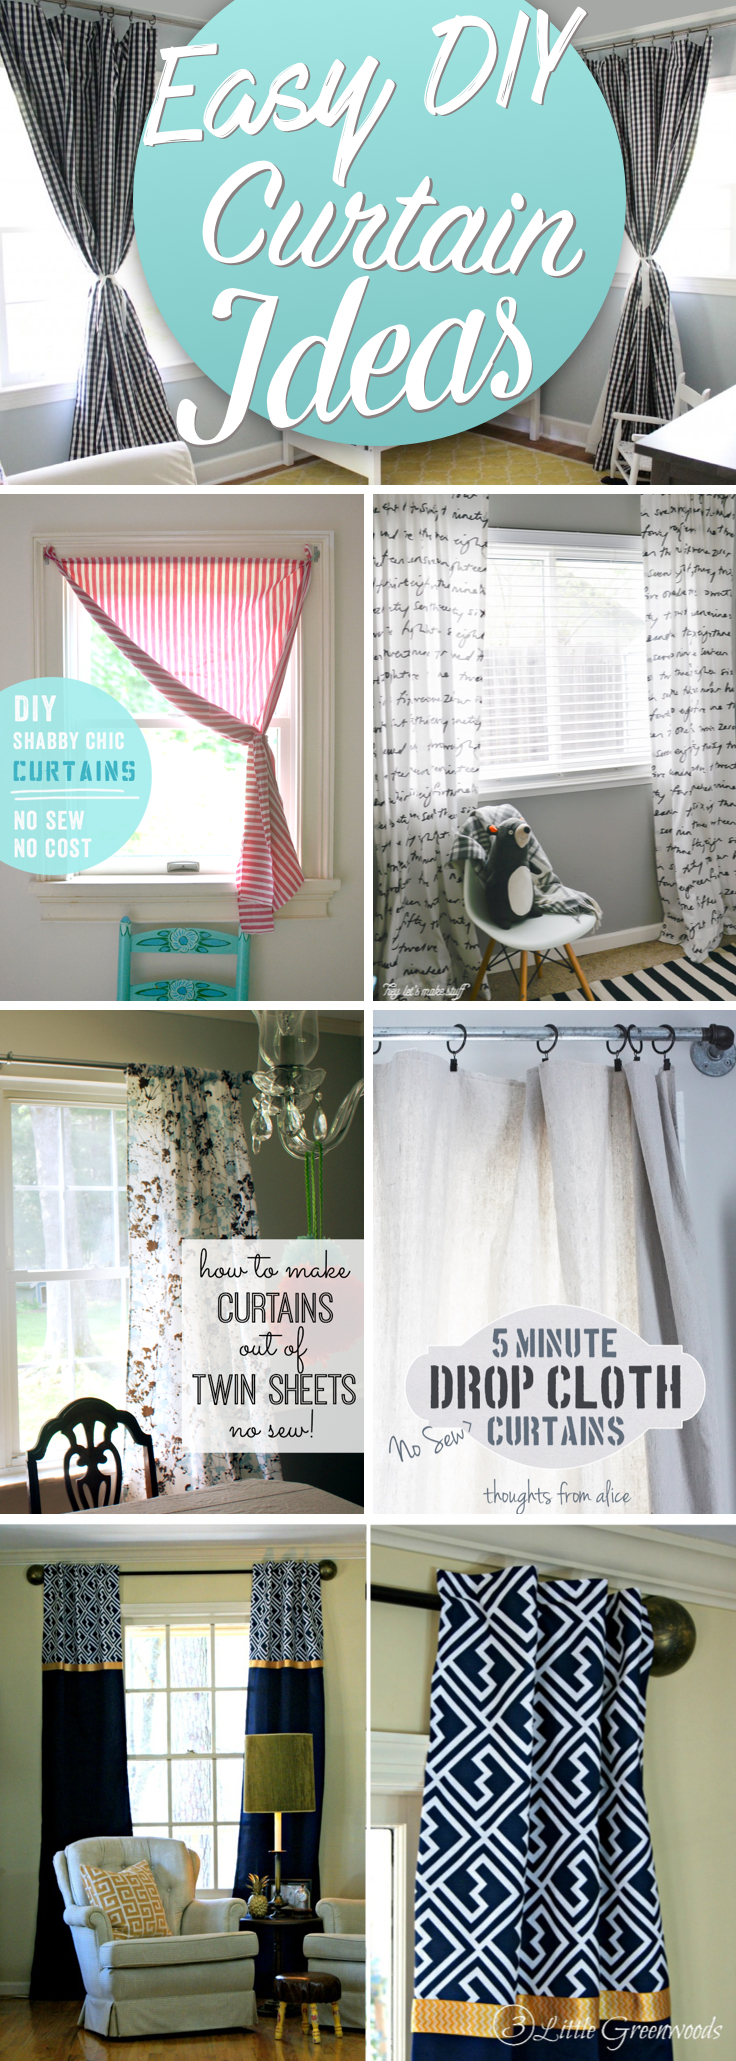 Make Curtains 20 Awesome Inspirations For Crafting Diy Curtains All By Yourself